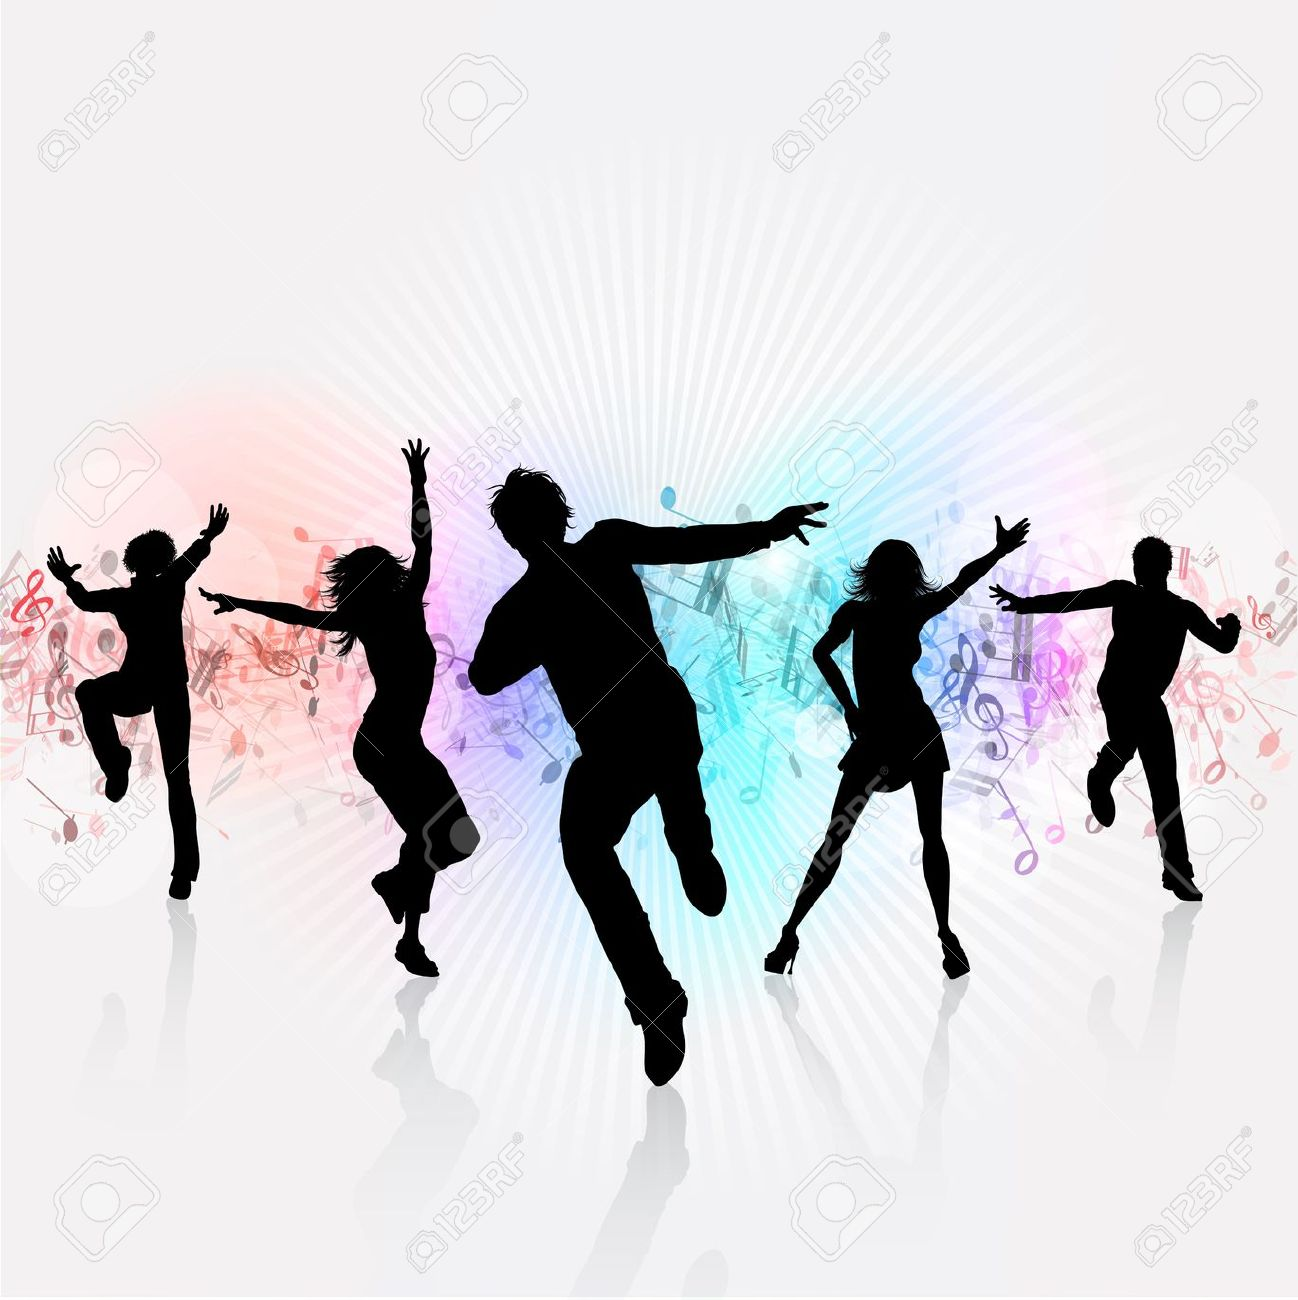 Silhouettes Of People Dancing On A Music Notes Background Stock Photo Picture And Royalty Free Image Image 14402284